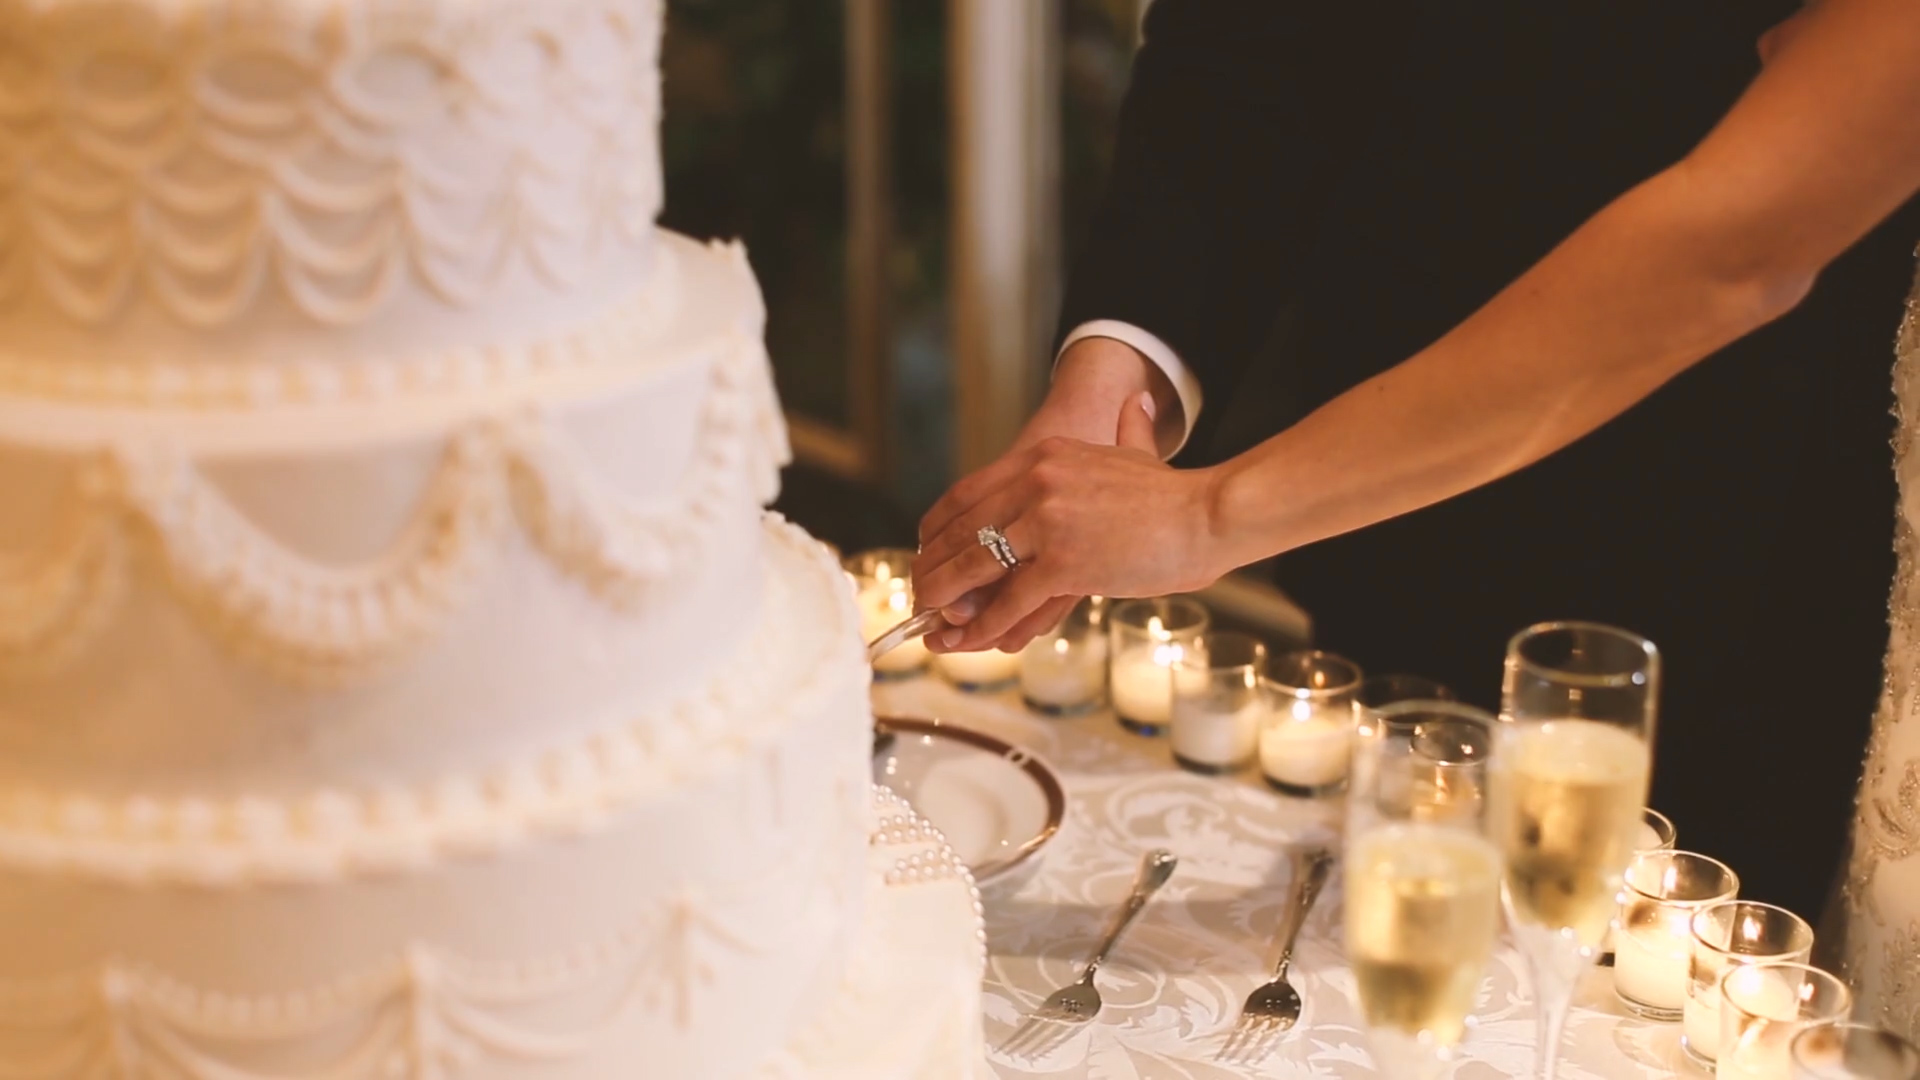 We love how the Haydel's wedding cake glowed with all of the tea light candles surrounding it.